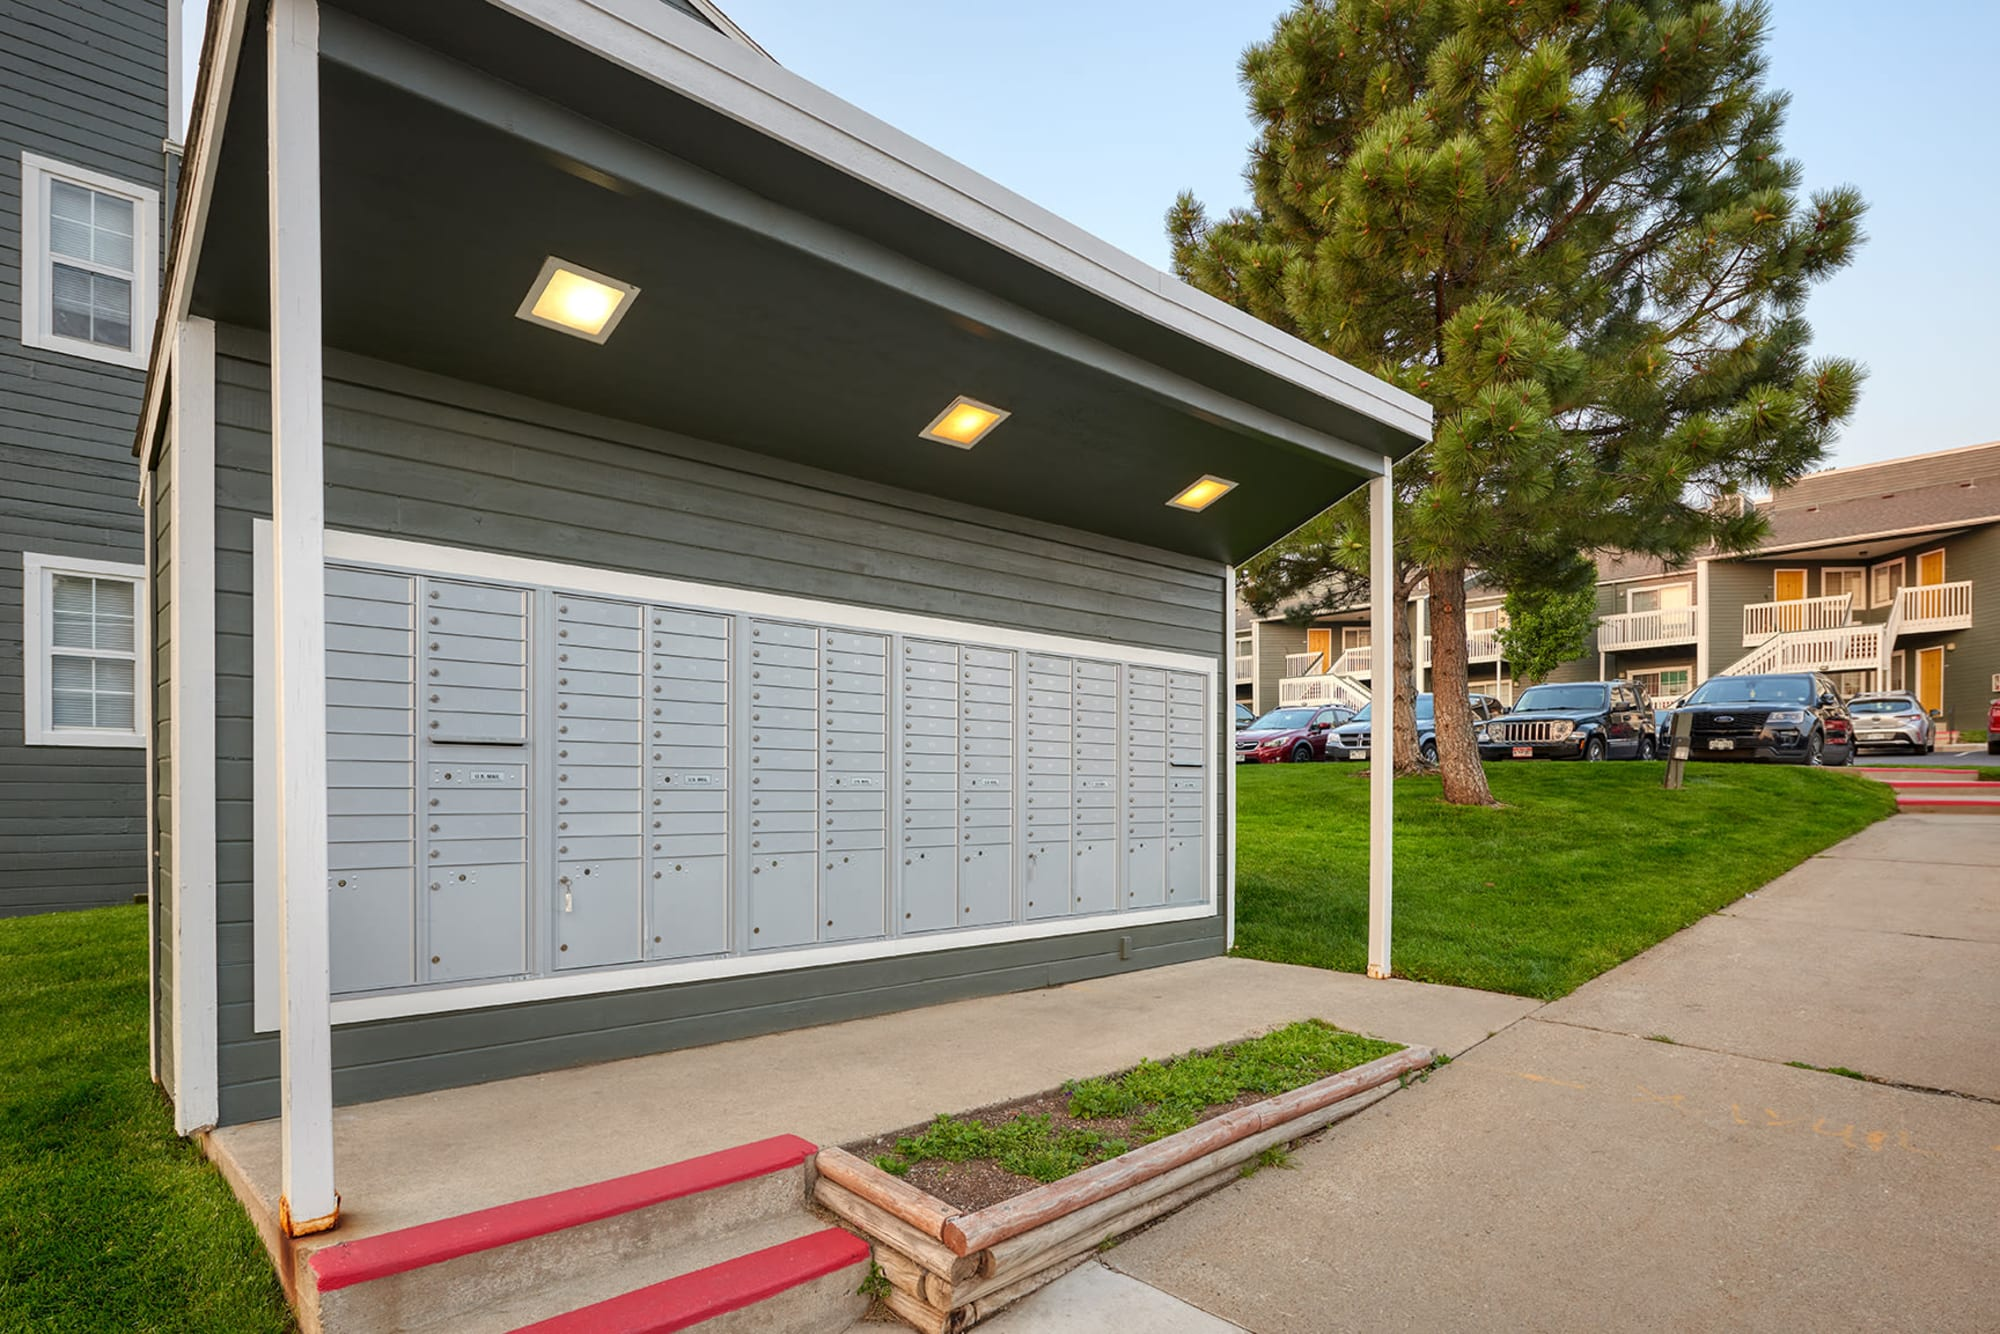 Outdoor Covered Mailboxes of Bluesky Landing Apartments in Lakewood, Colorado